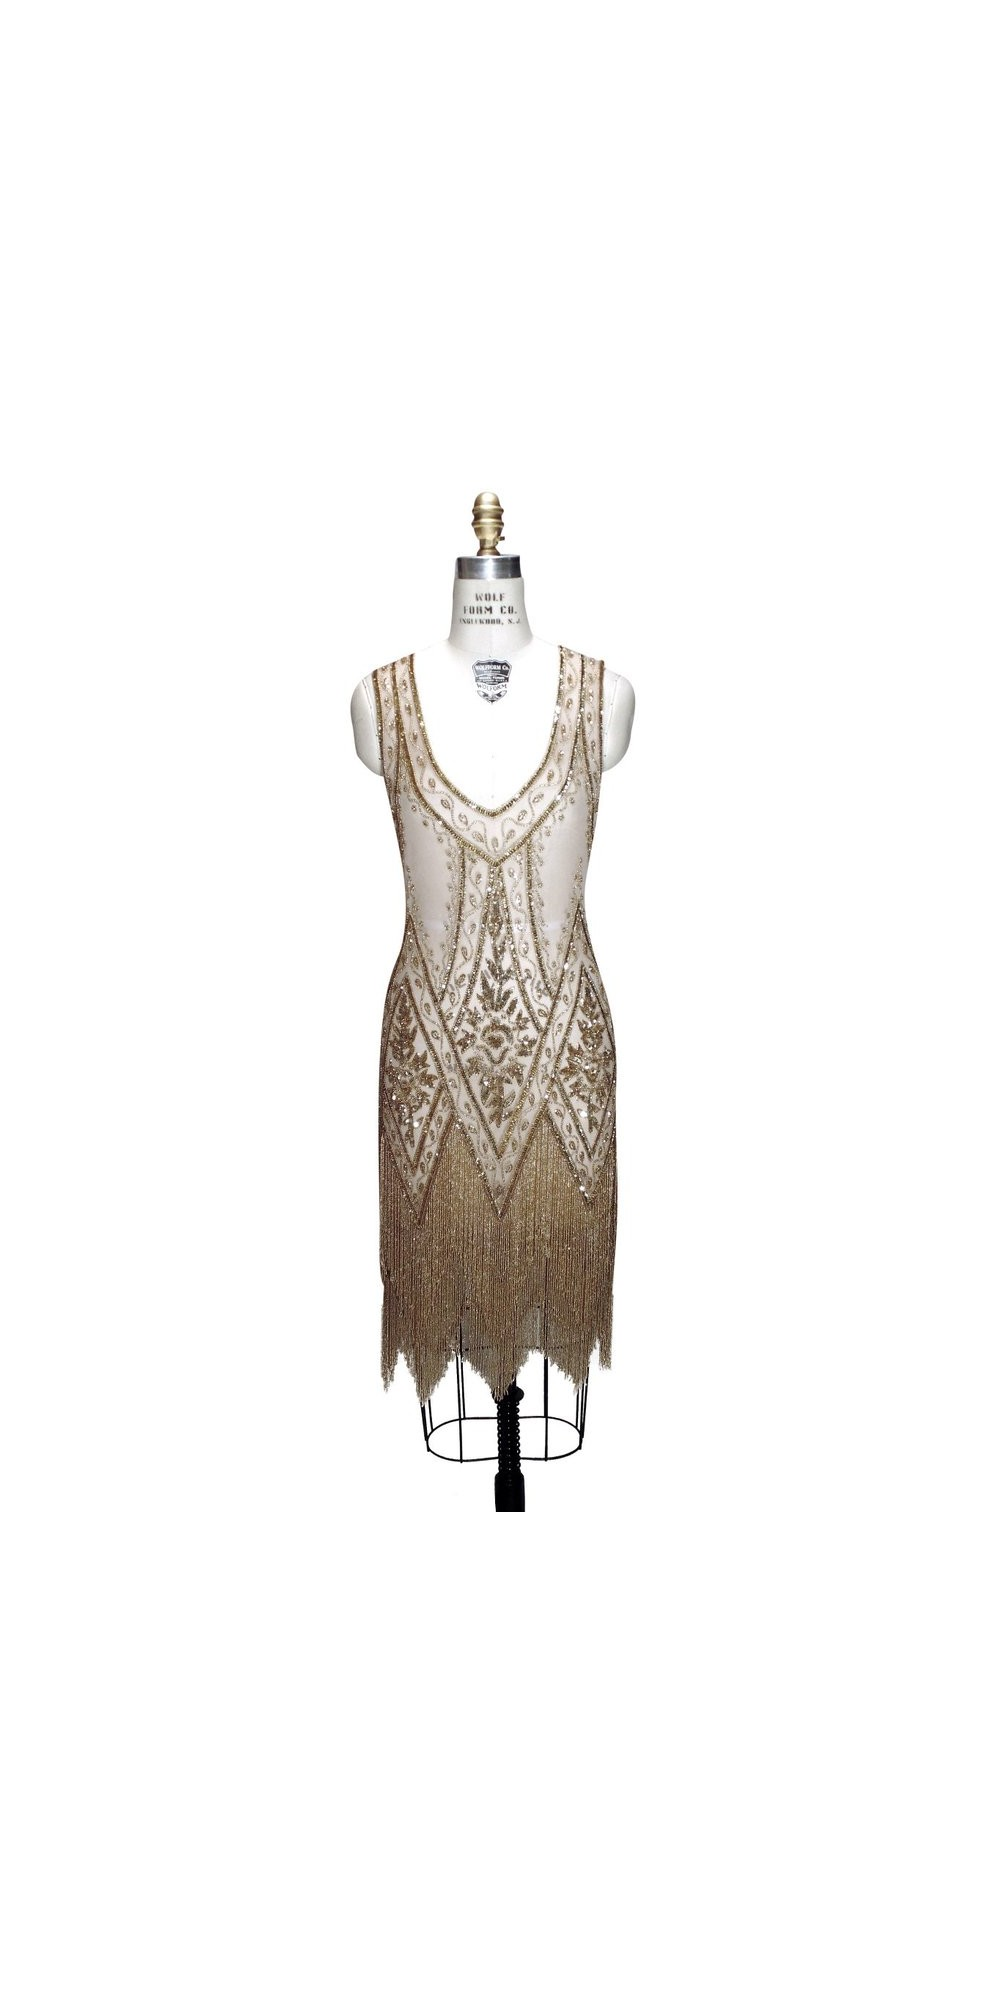 Wolf Haus Reggio Emilia 1920s style fringe party dress in gold by the deco haus